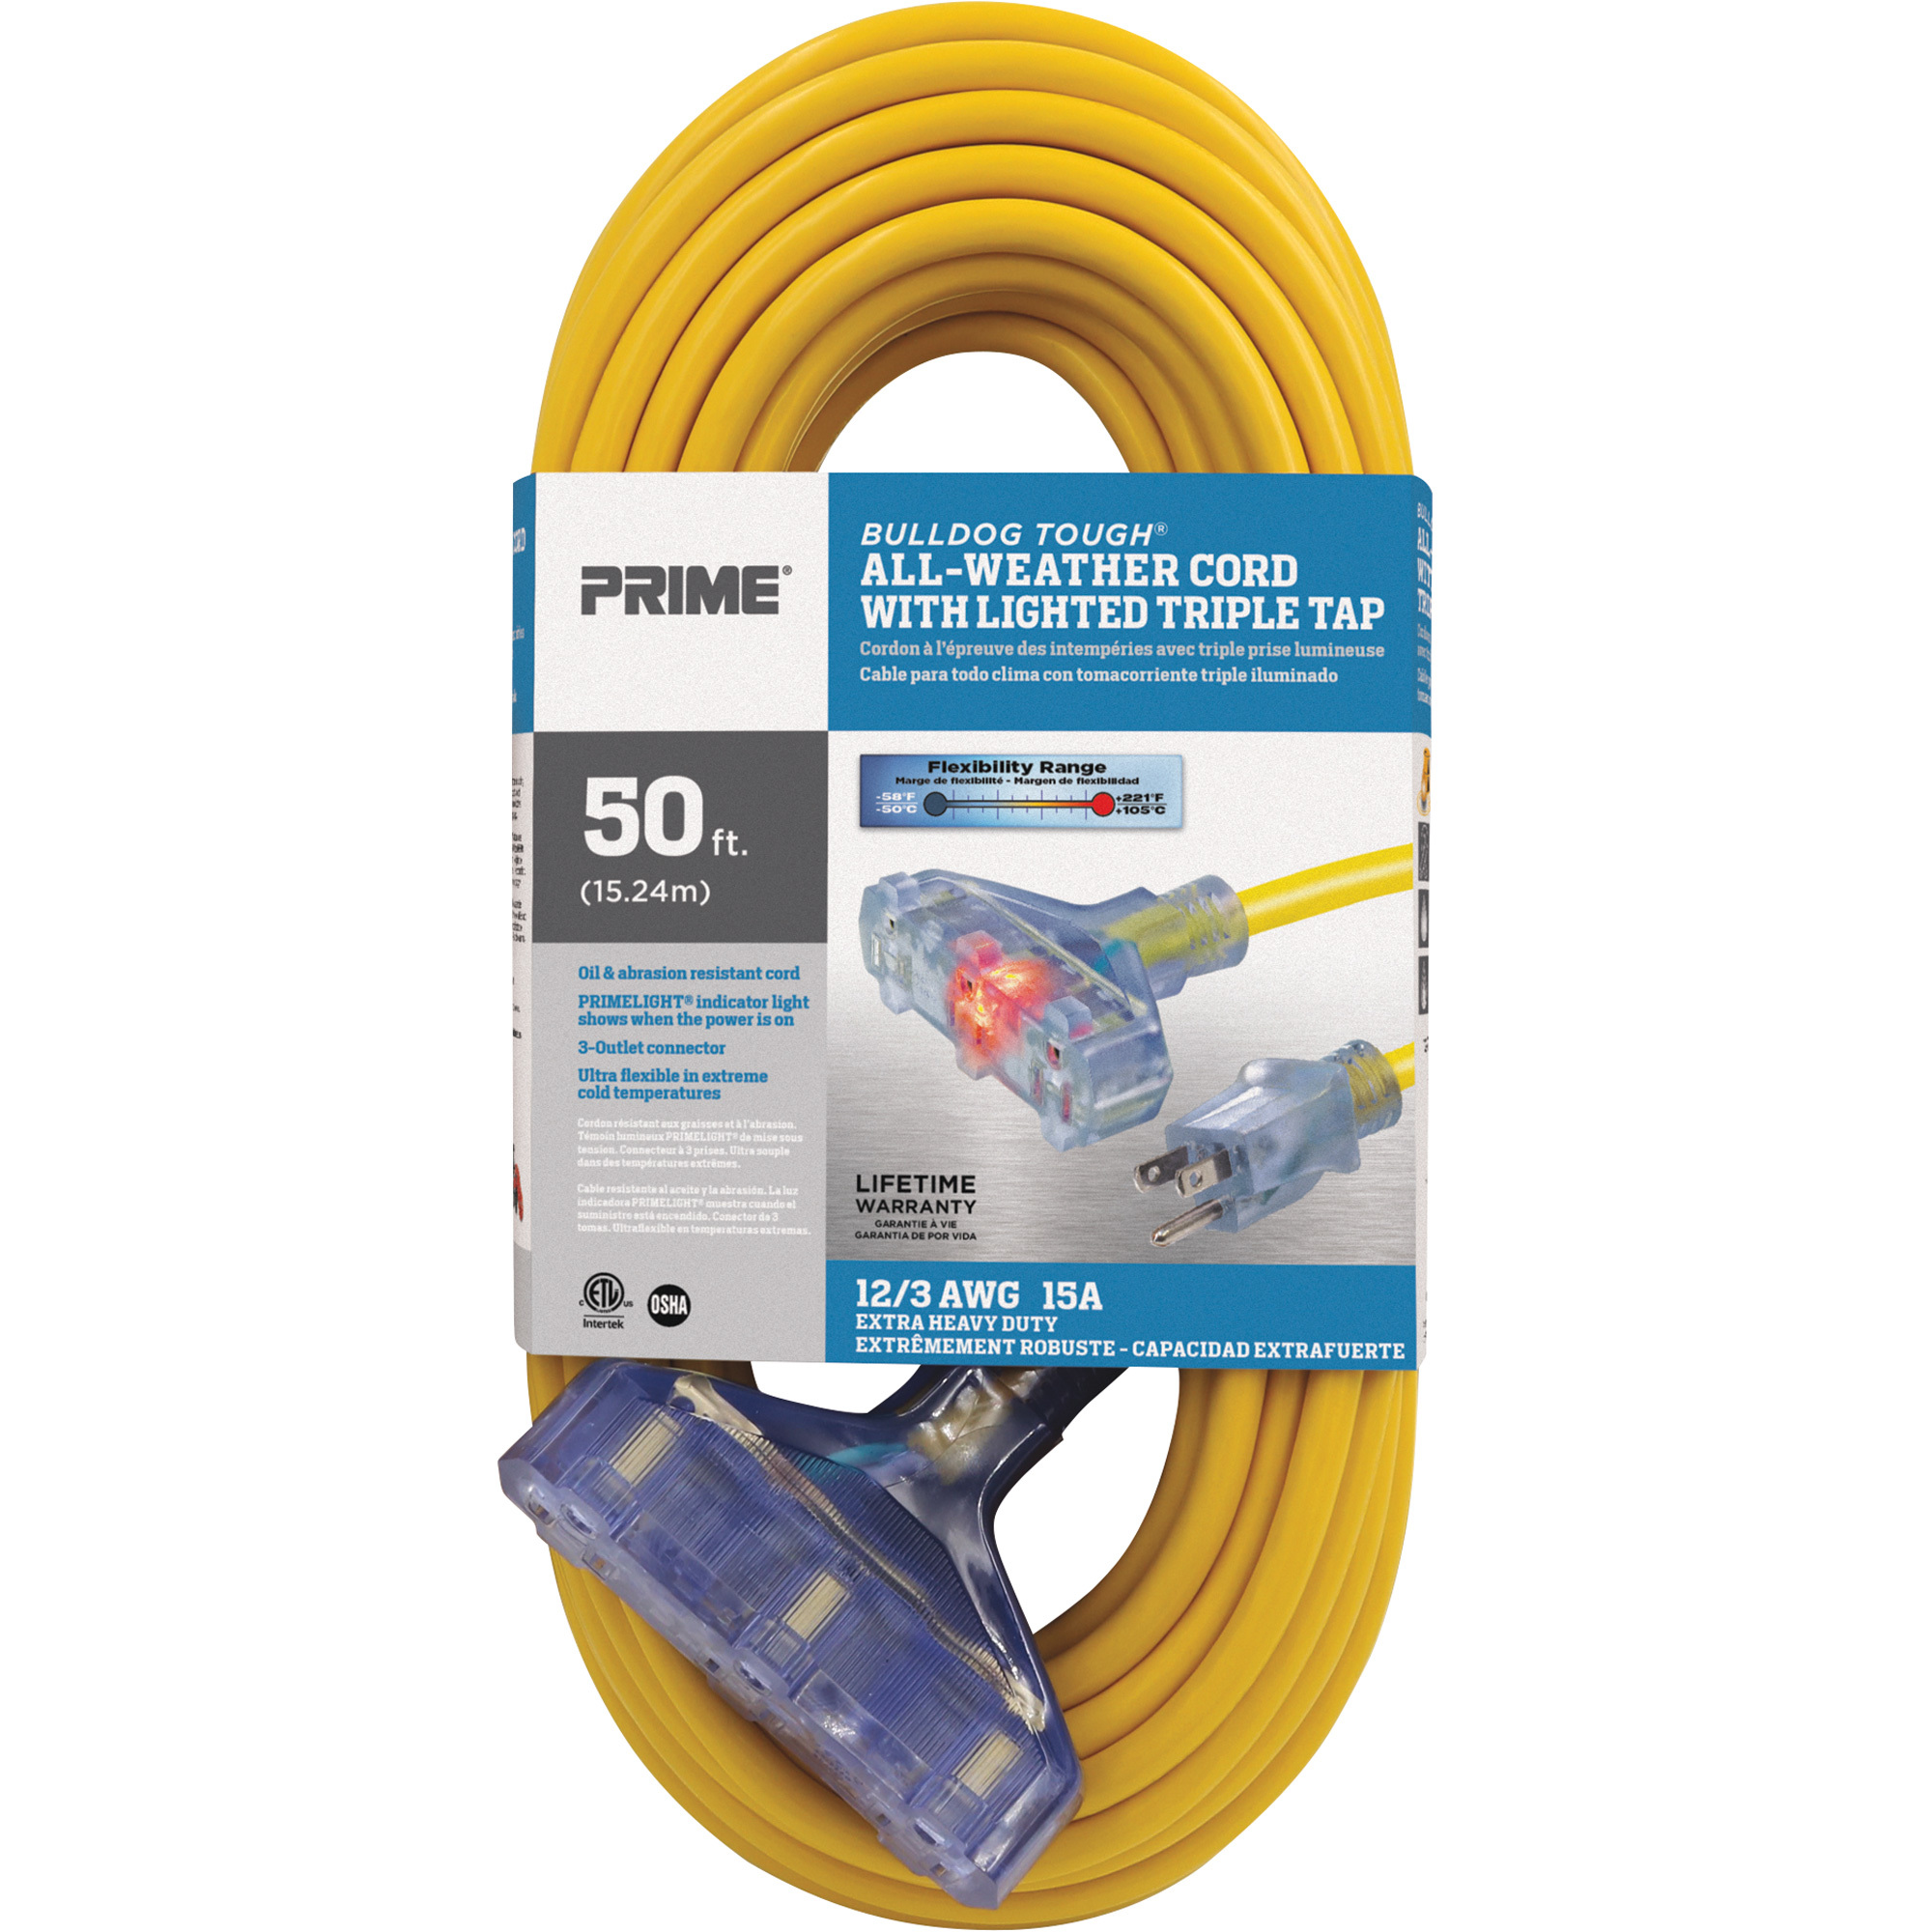 Prime Wire Cable Bulldog Tough Outdoor Extension Cord With Triple Tap 50ft